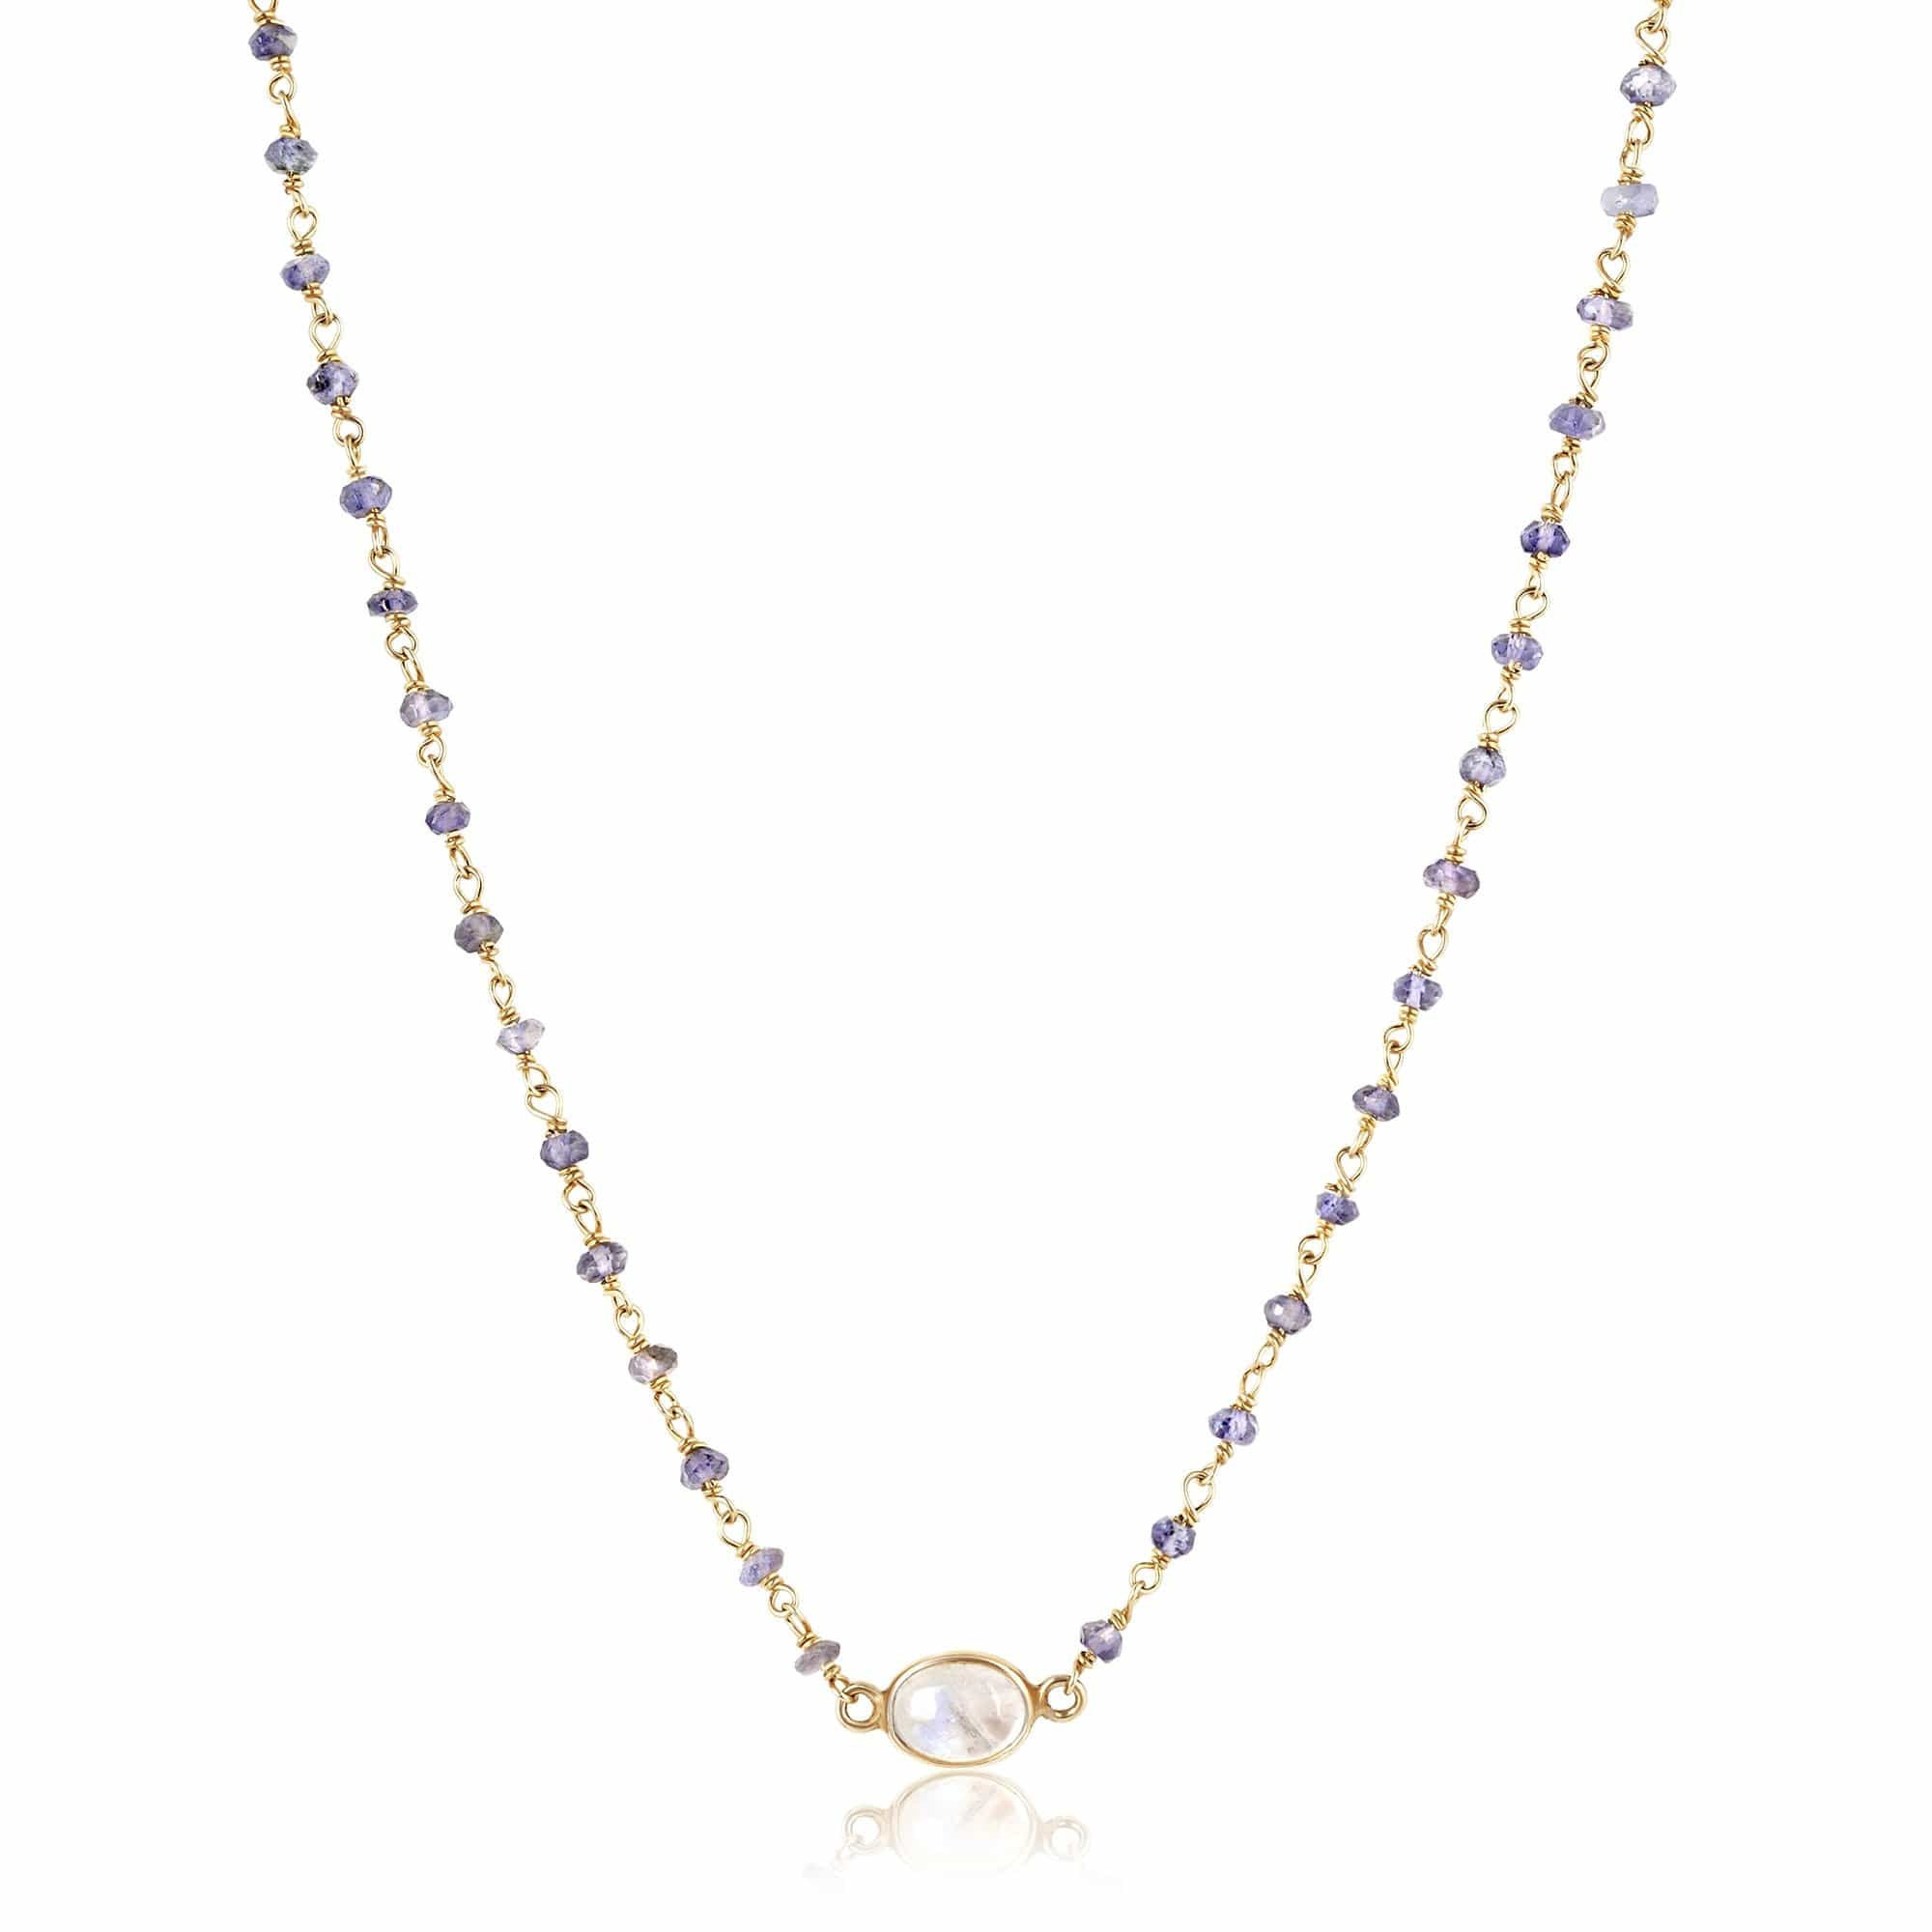 ela rae libi choker necklace iolite rainbow moonstone 14k yellow gold plate